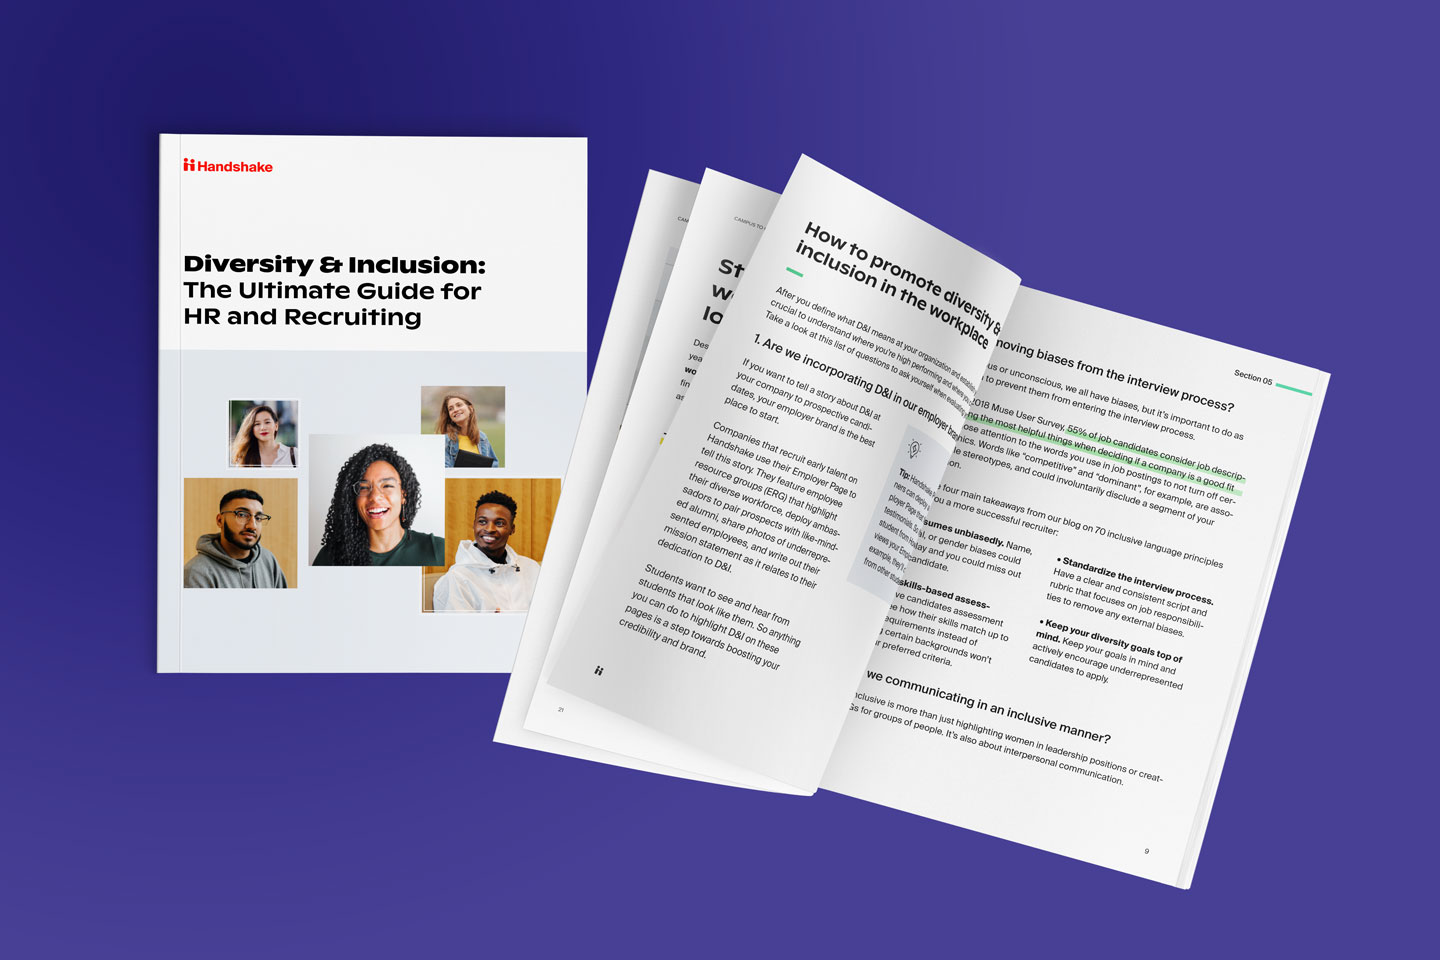 Diversity & Inclusion: The Ultimate Guide for HR & Recruiting